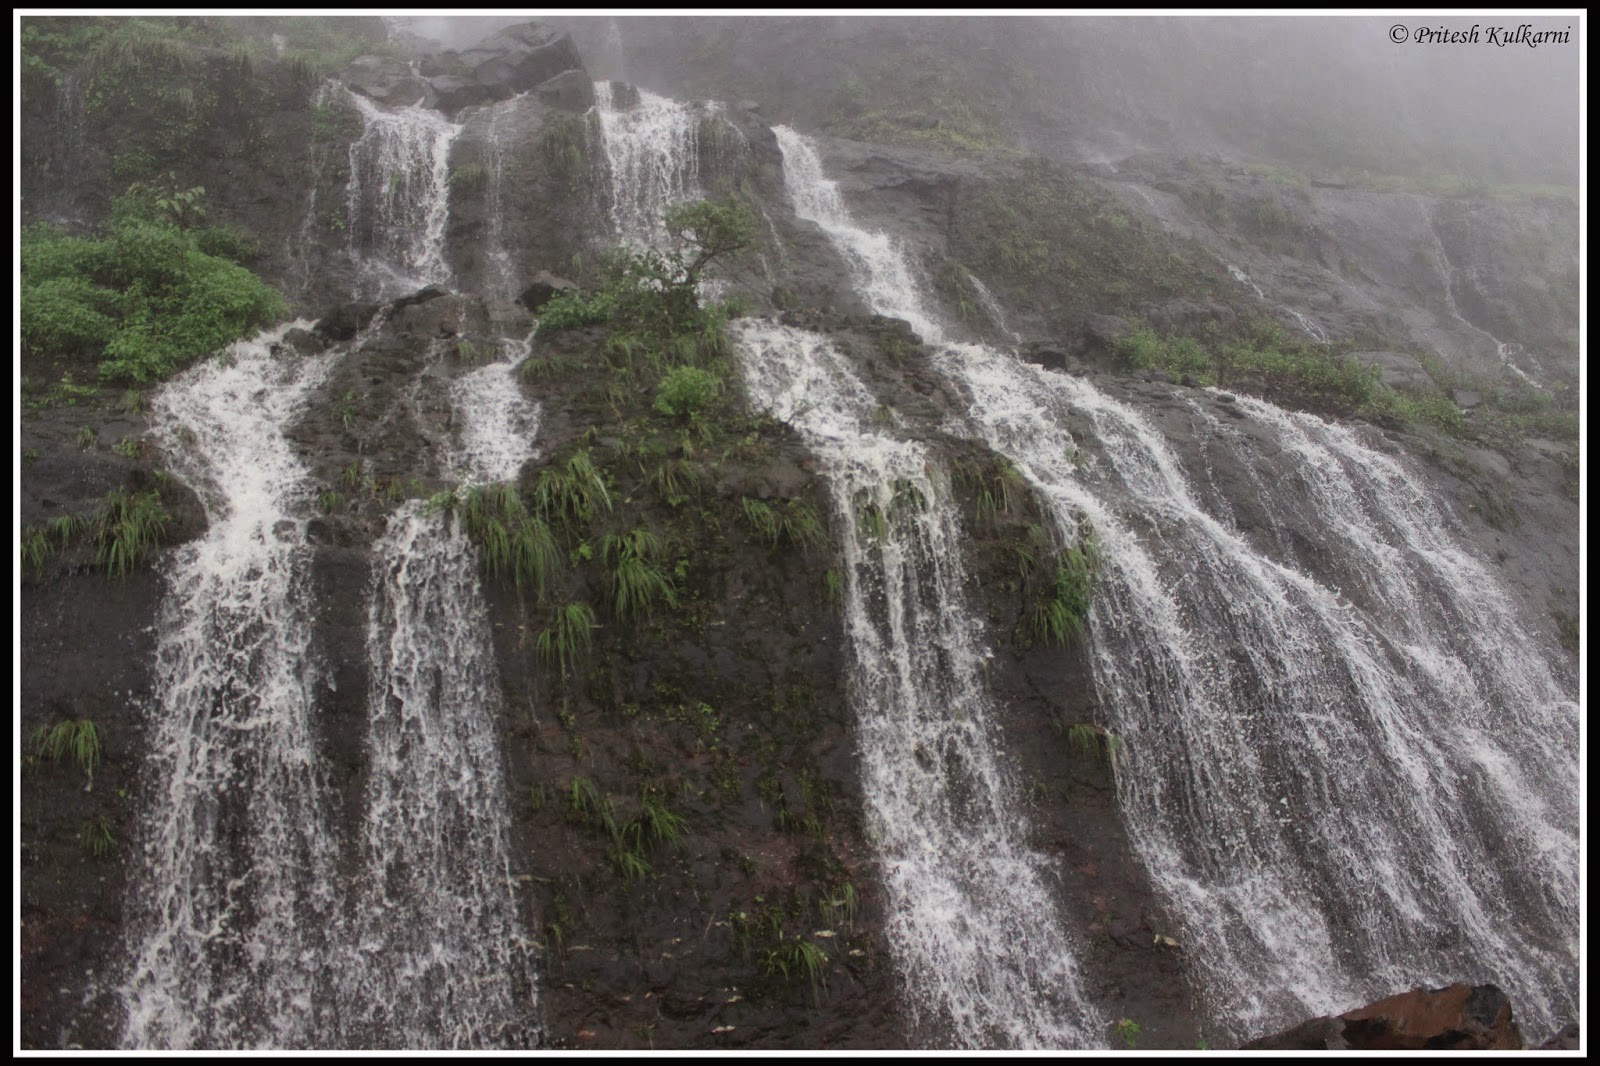 Waterfall in Malshej ghat